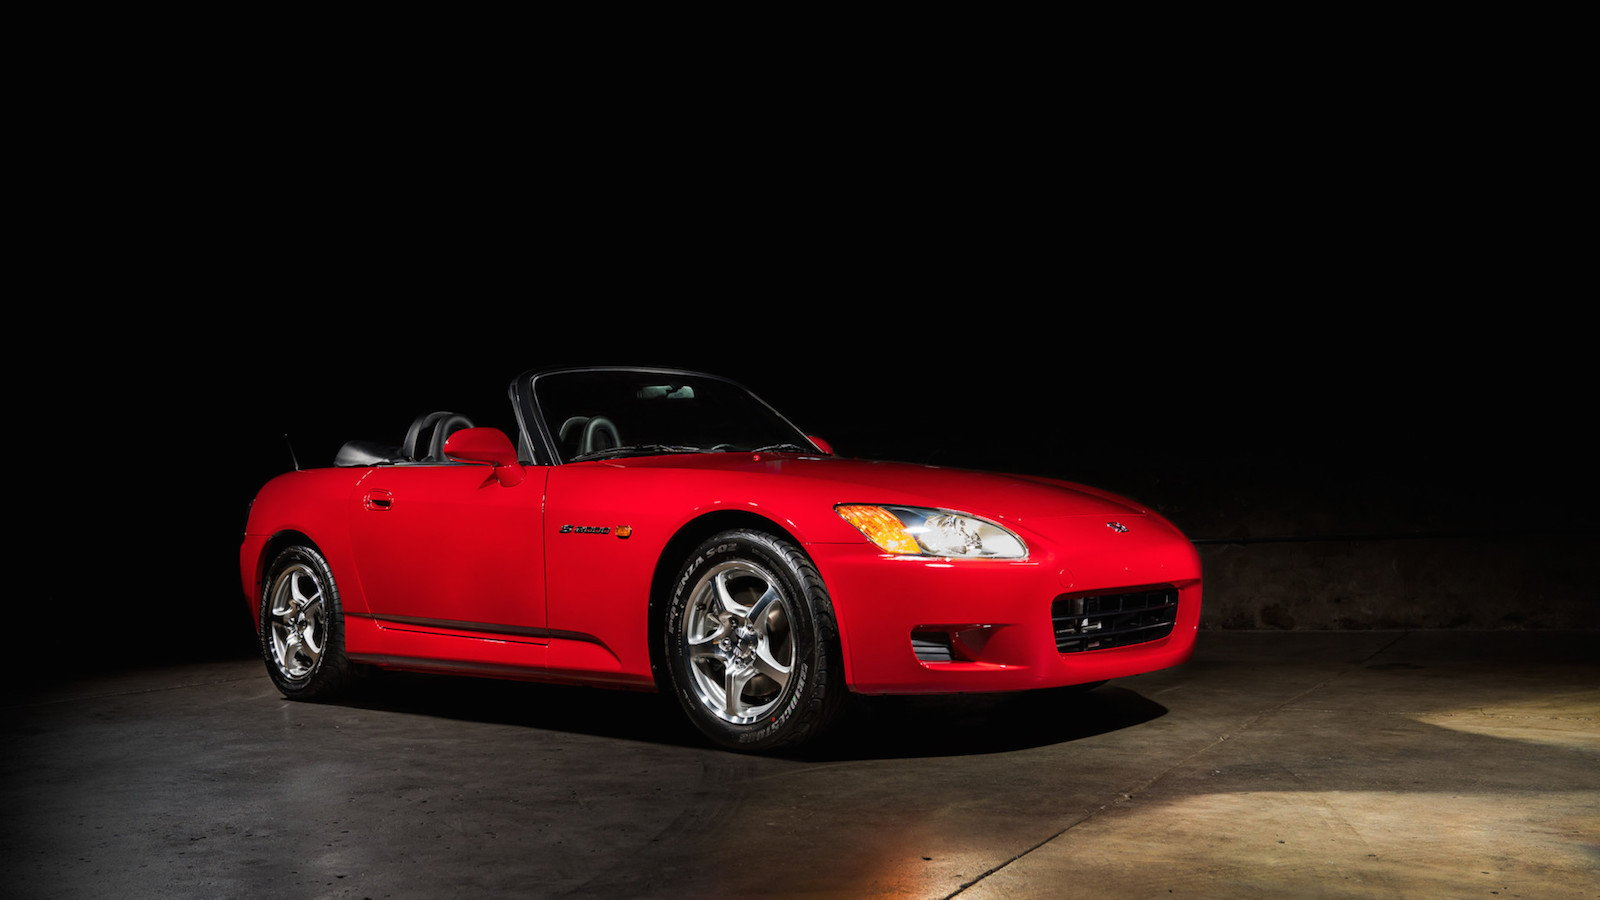 Let's Examine This S2000 That Sold for $48,000